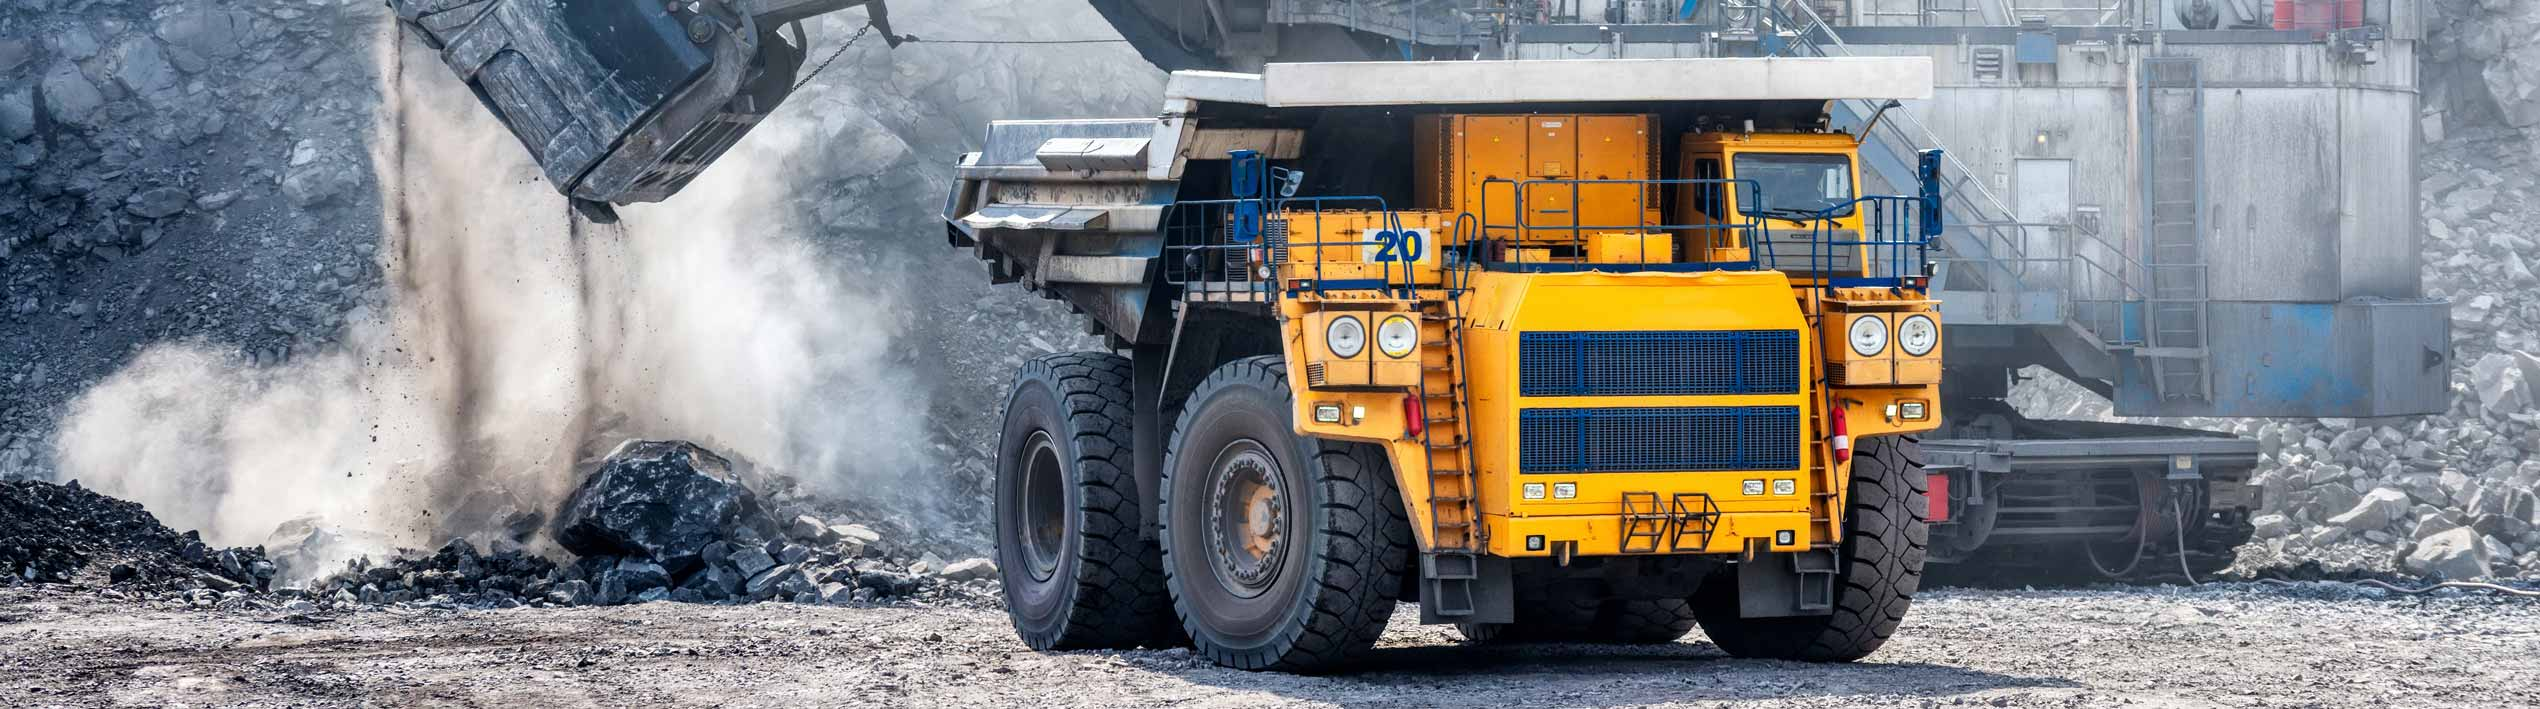 Big yellow dumper in mining field